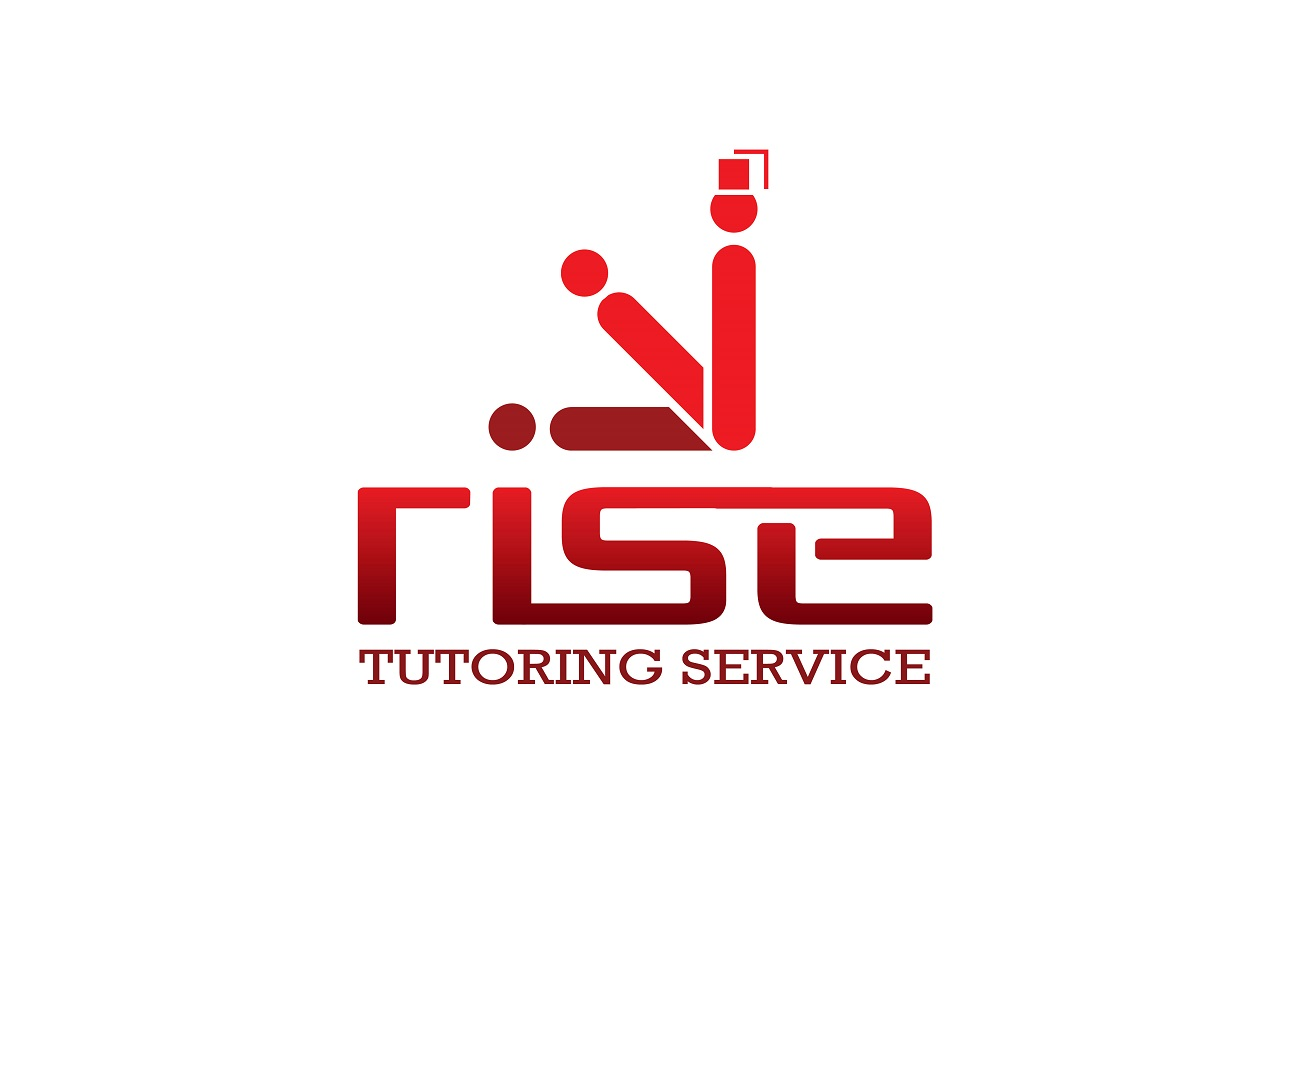 Logo Design by jhunzkie24 - Entry No. 67 in the Logo Design Contest Imaginative Logo Design for Rise Tutoring Service.